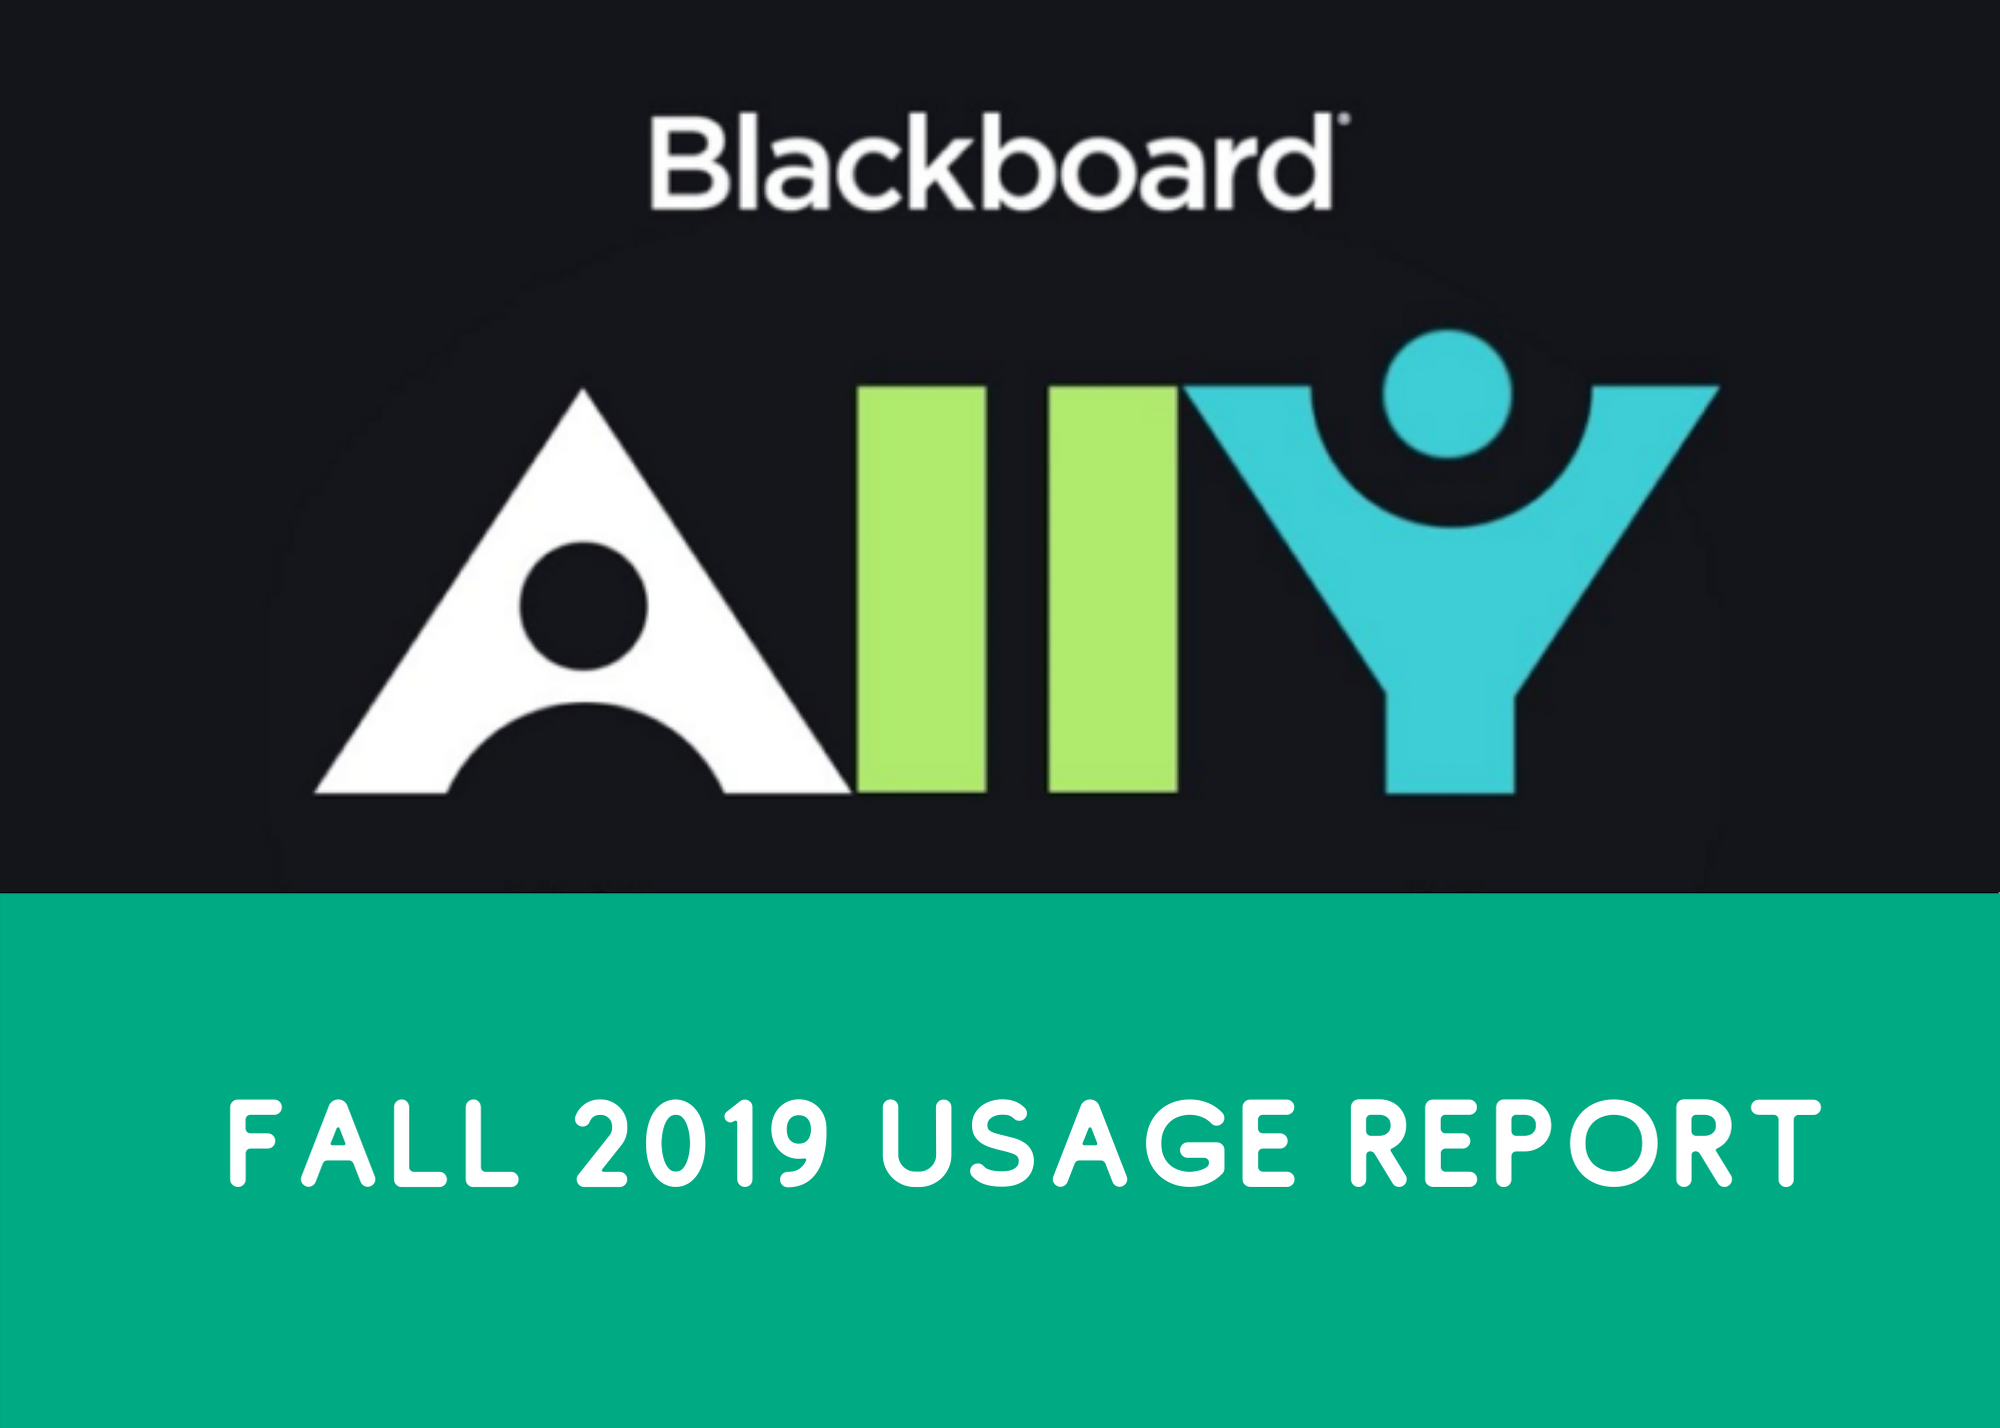 Blackboard Ally Fall 2019 Usage Report